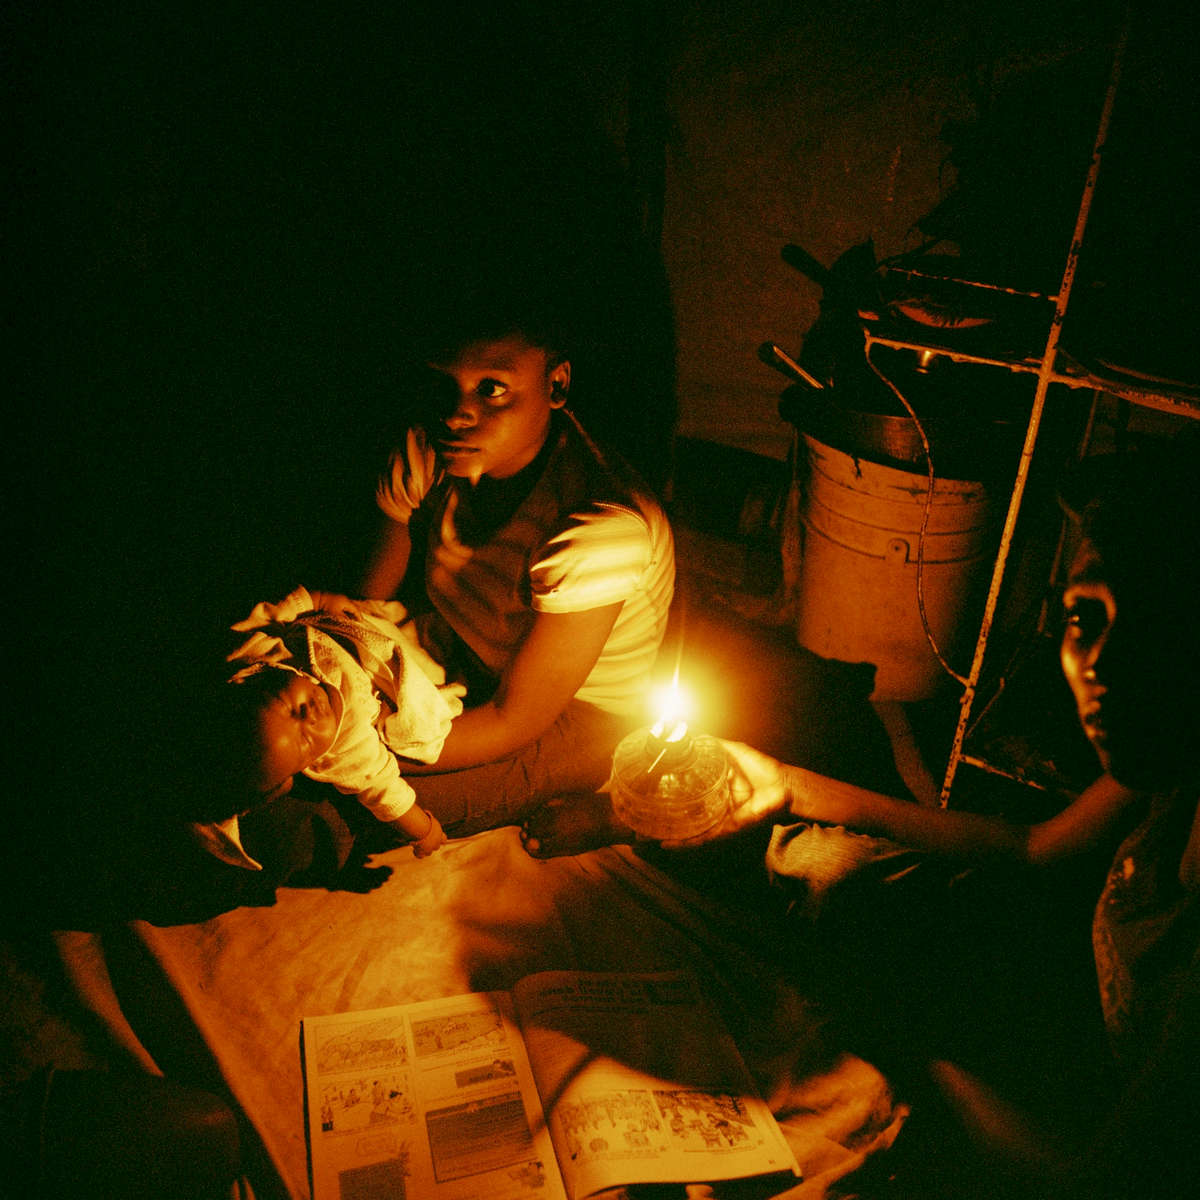 There is limited public electricity. Residential areas less affected by the earthquake receive intermittent electricity, usually for a few hours morning and night, although there is never a guarantee. Most electrical power comes from generators although the most common sources of light are bonfires and candles.